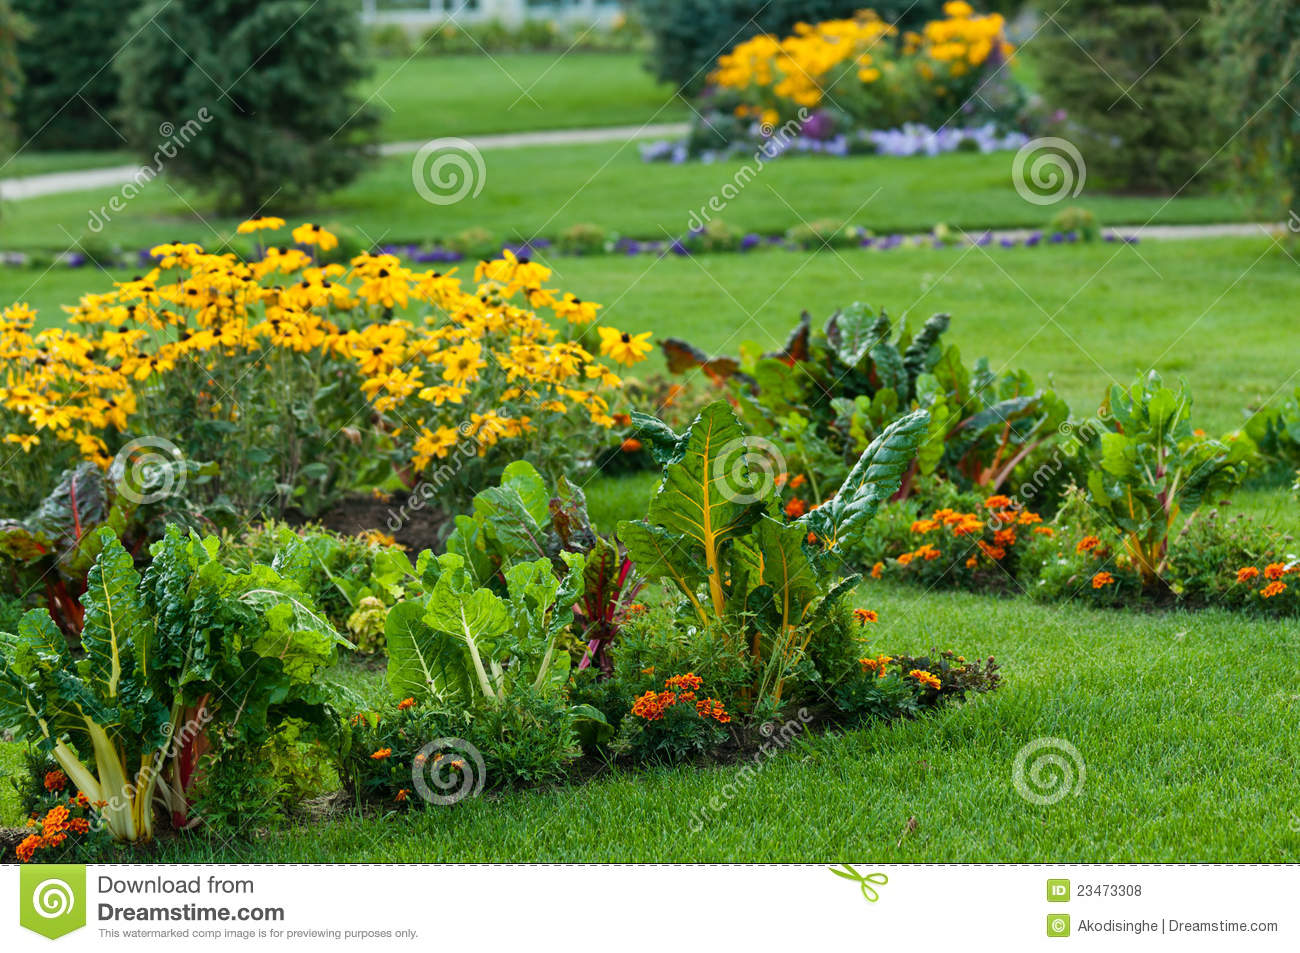 Garden with vegetables and flowers stock photo image of beautiful garden with leafy vegetables and bright colored flowers izmirmasajfo